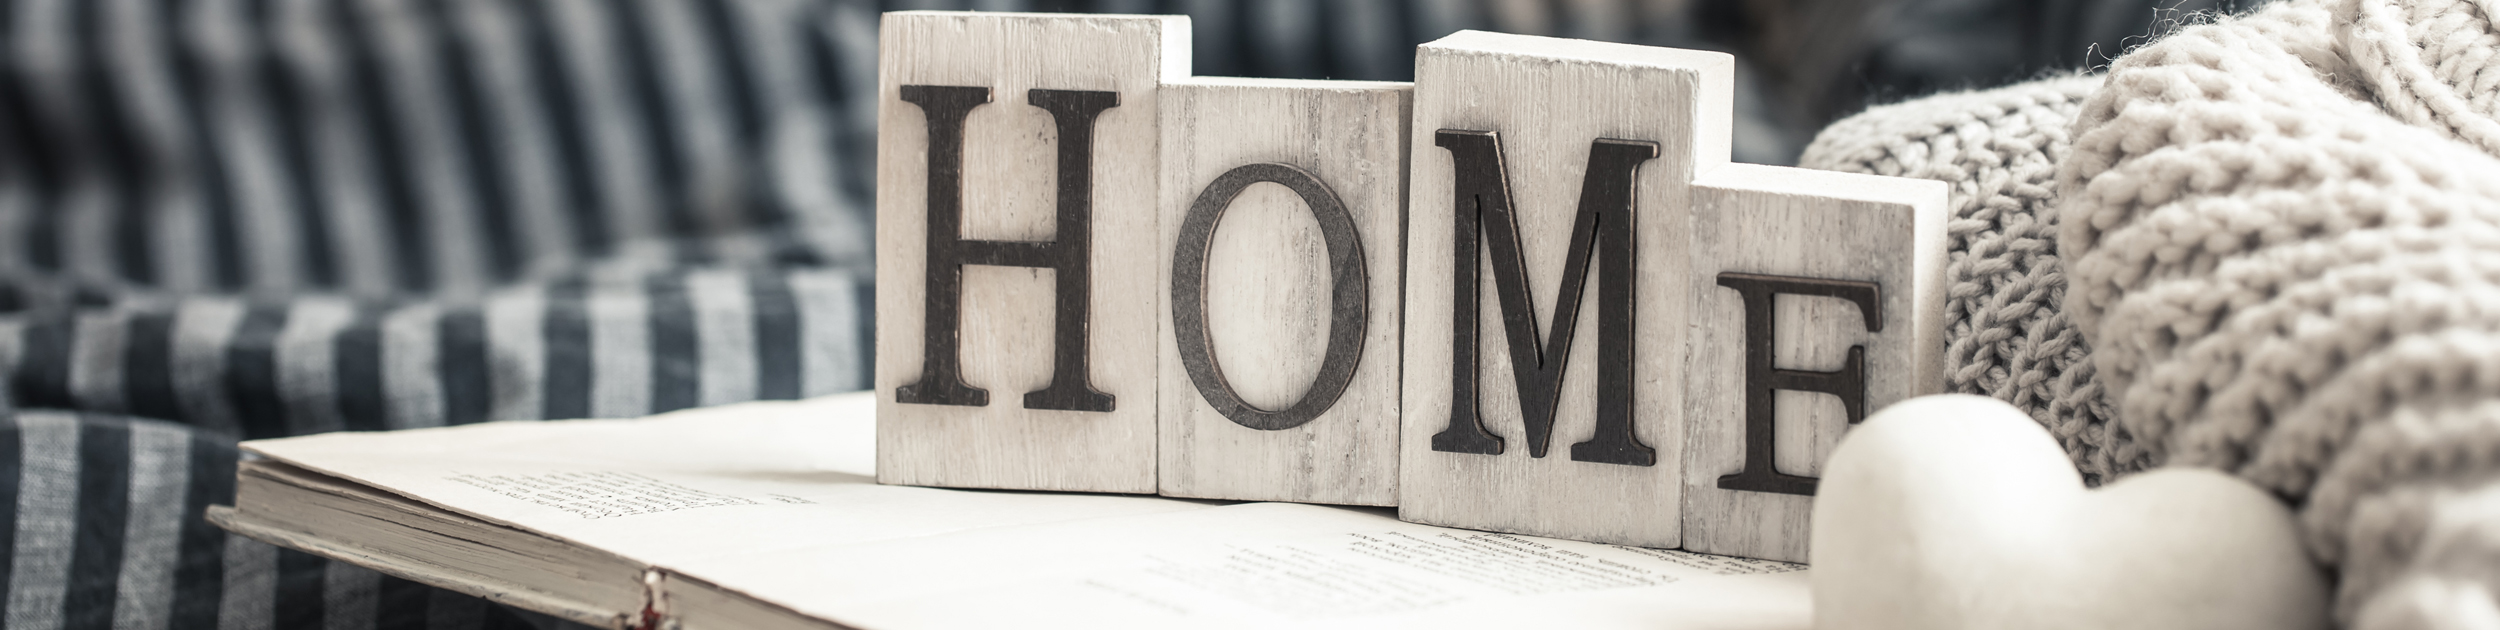 the word HOME spelled out on wooden blocks in a cozy setting